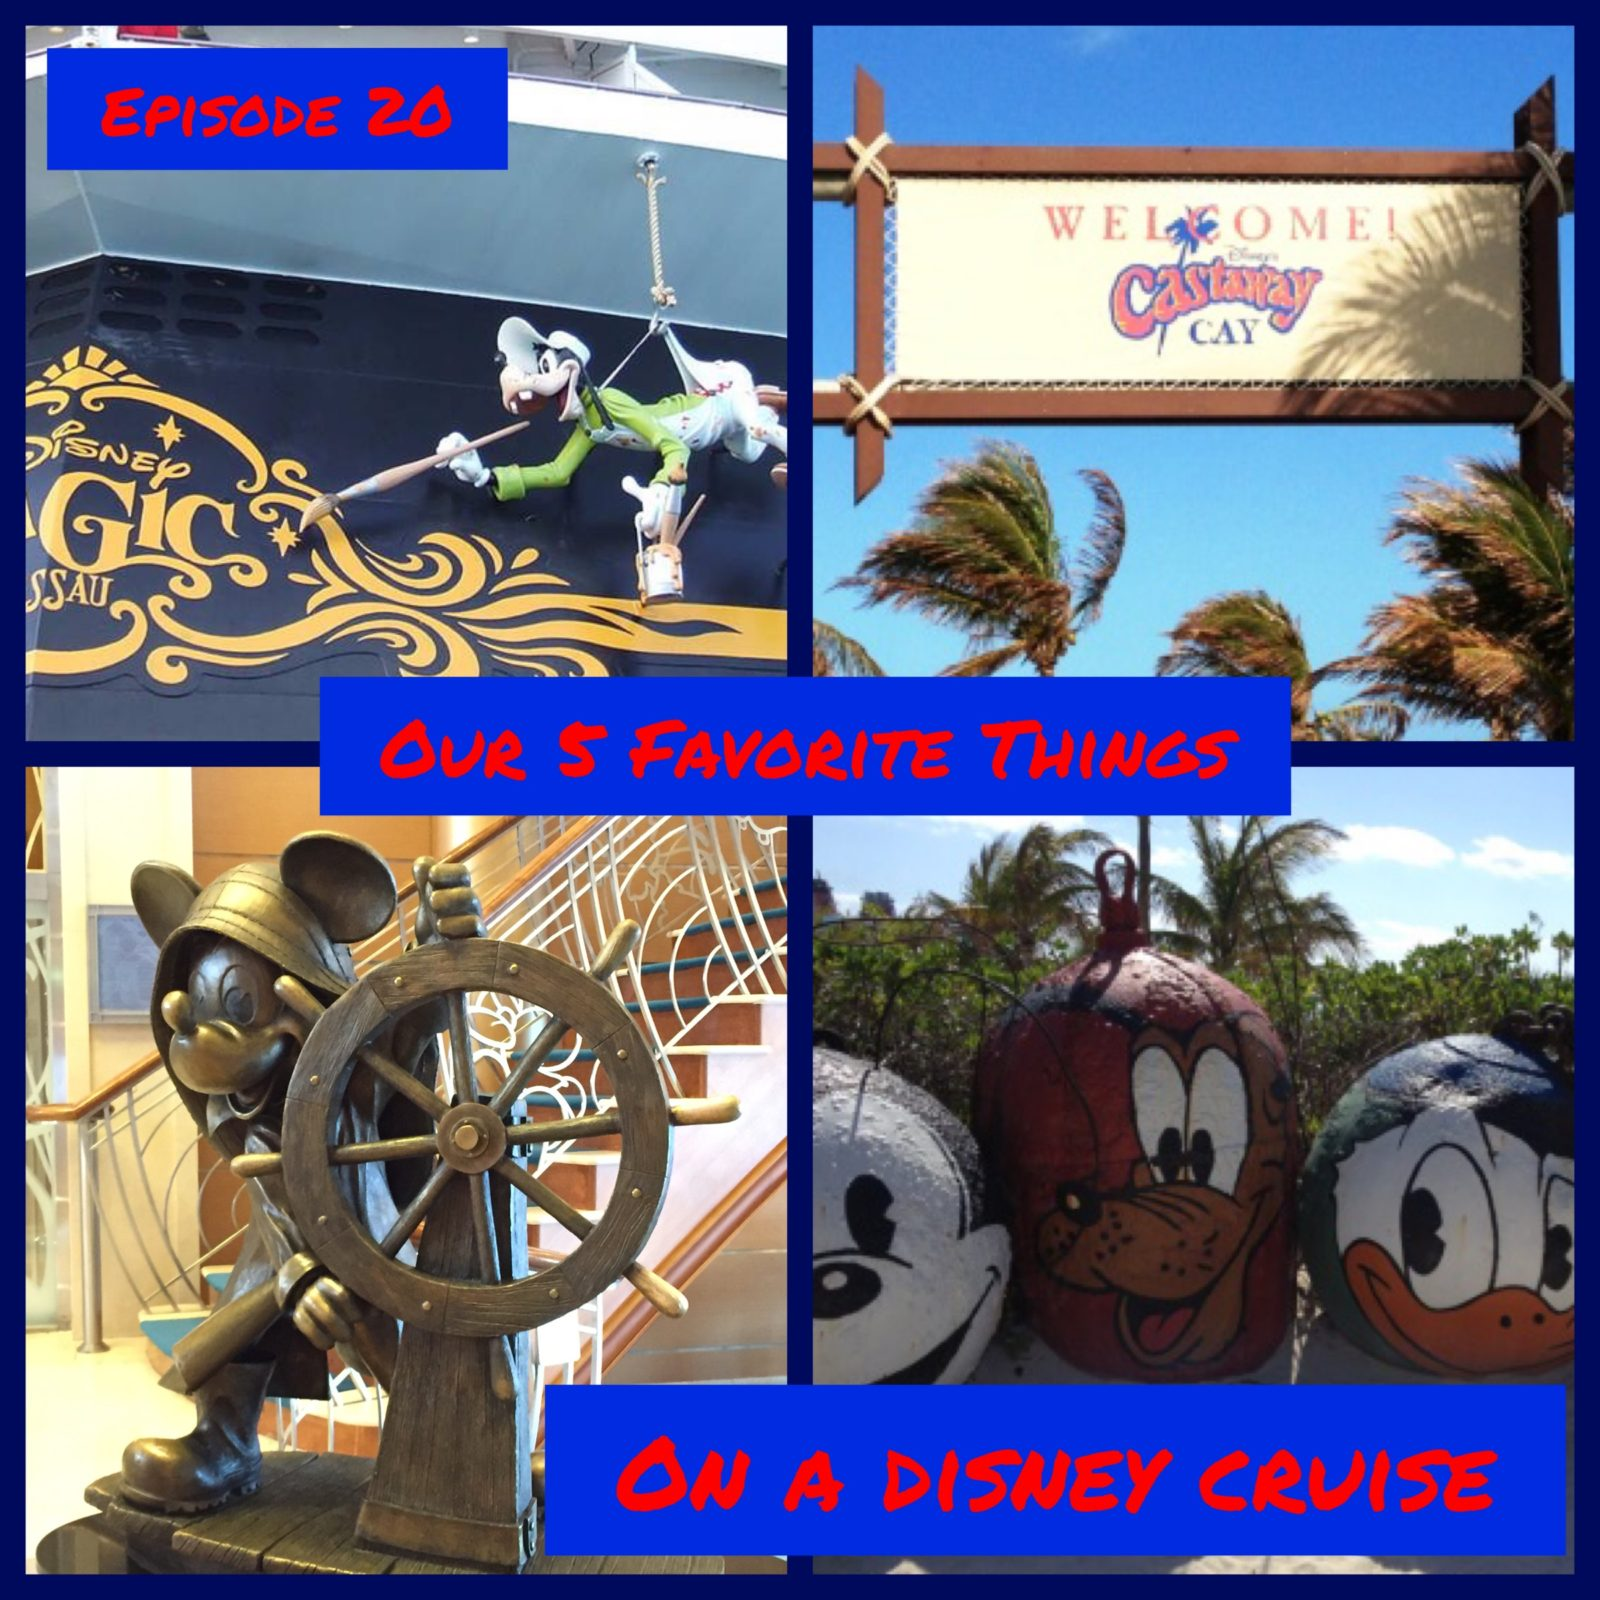 Episode 20 - Our 5 Favorite Things Aboard a Disney Cruise